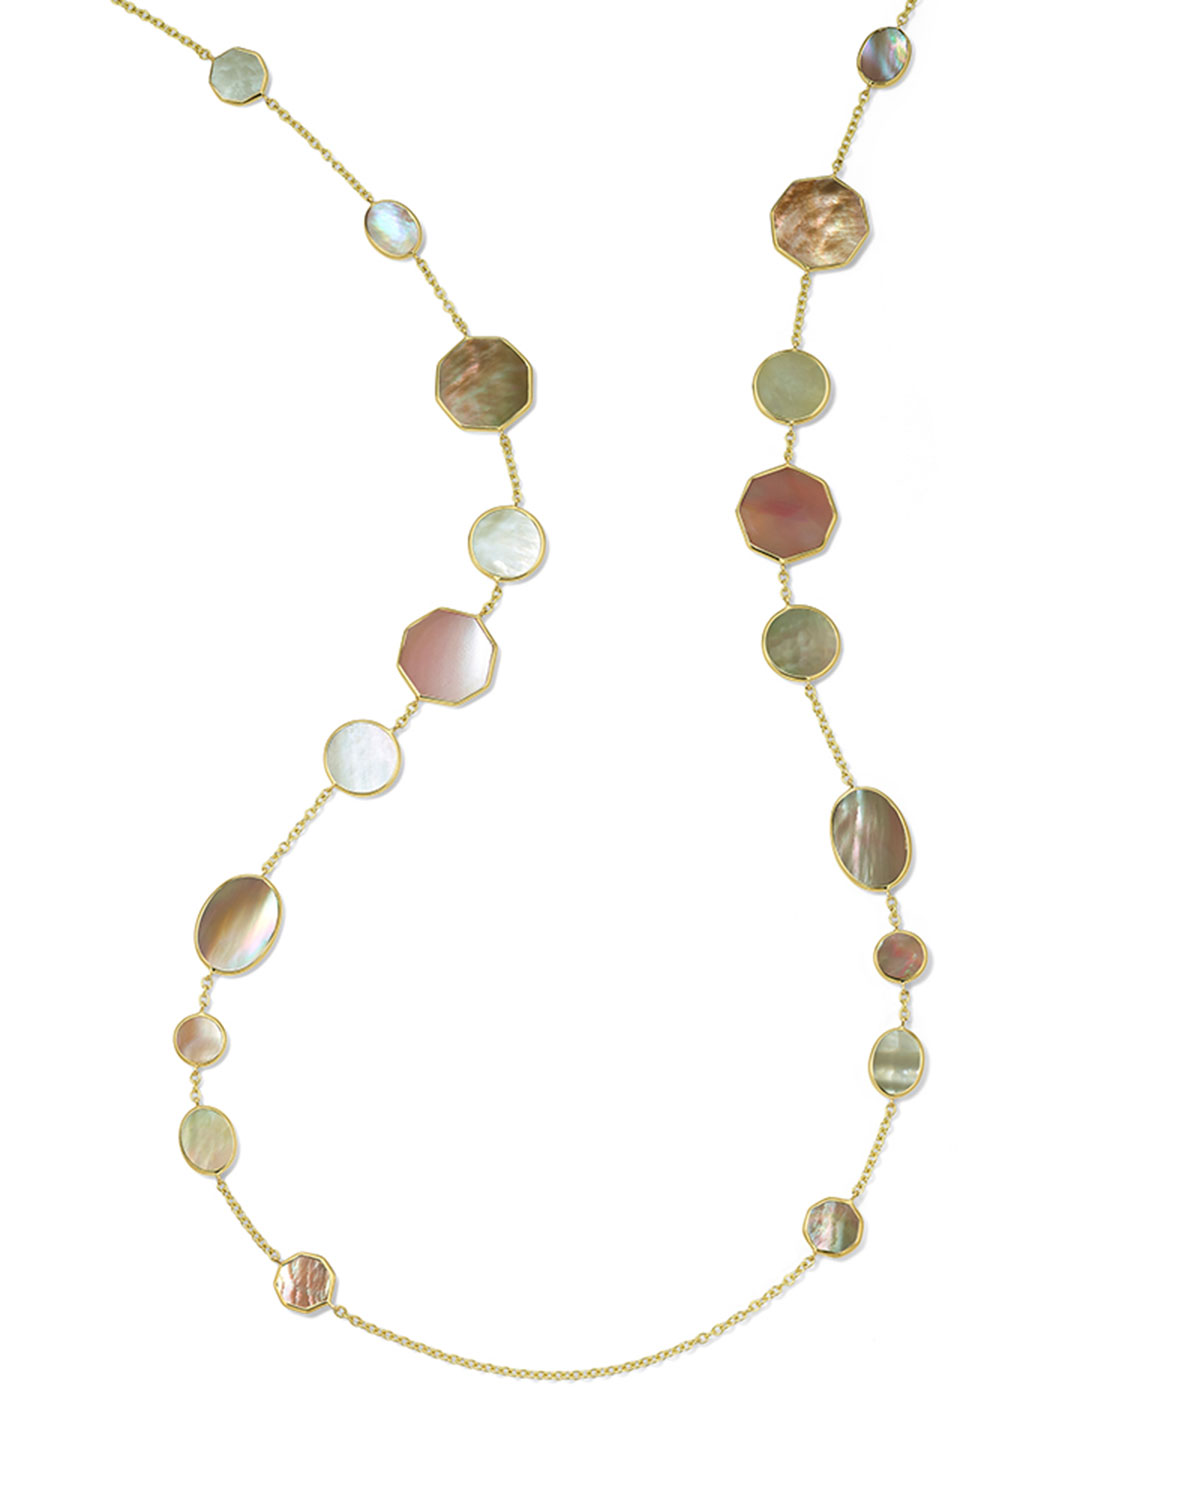 Ippolita 18K POLISHED ROCK CANDY CRAZY EIGHTS NECKLACE IN DAHLIA